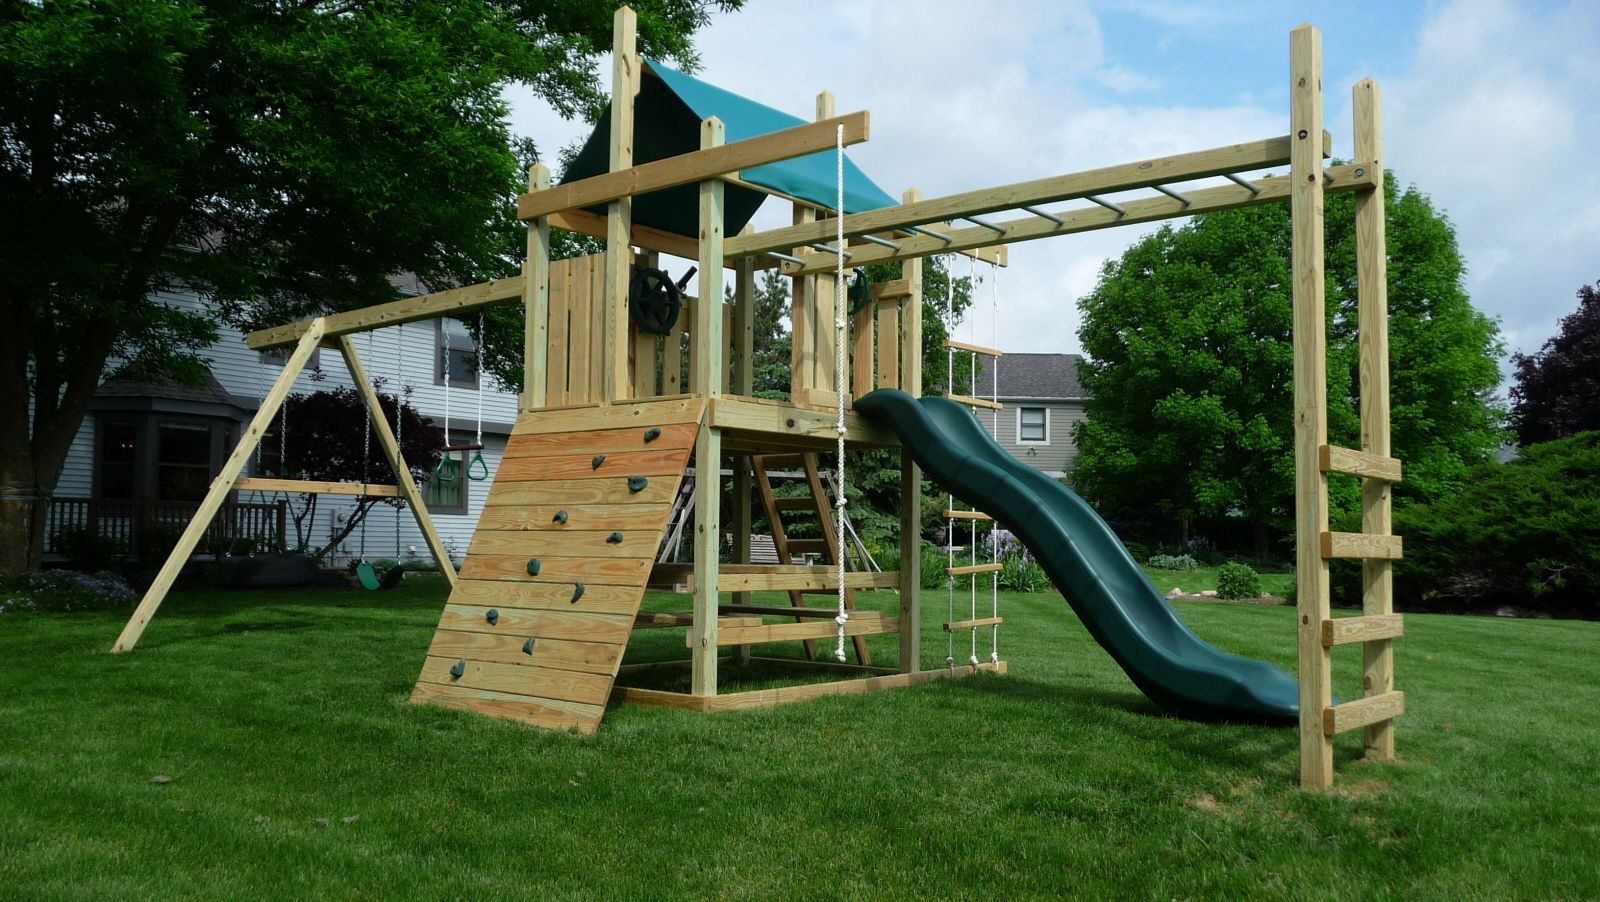 ohio playset playsets pinterest ohio playground and backyard